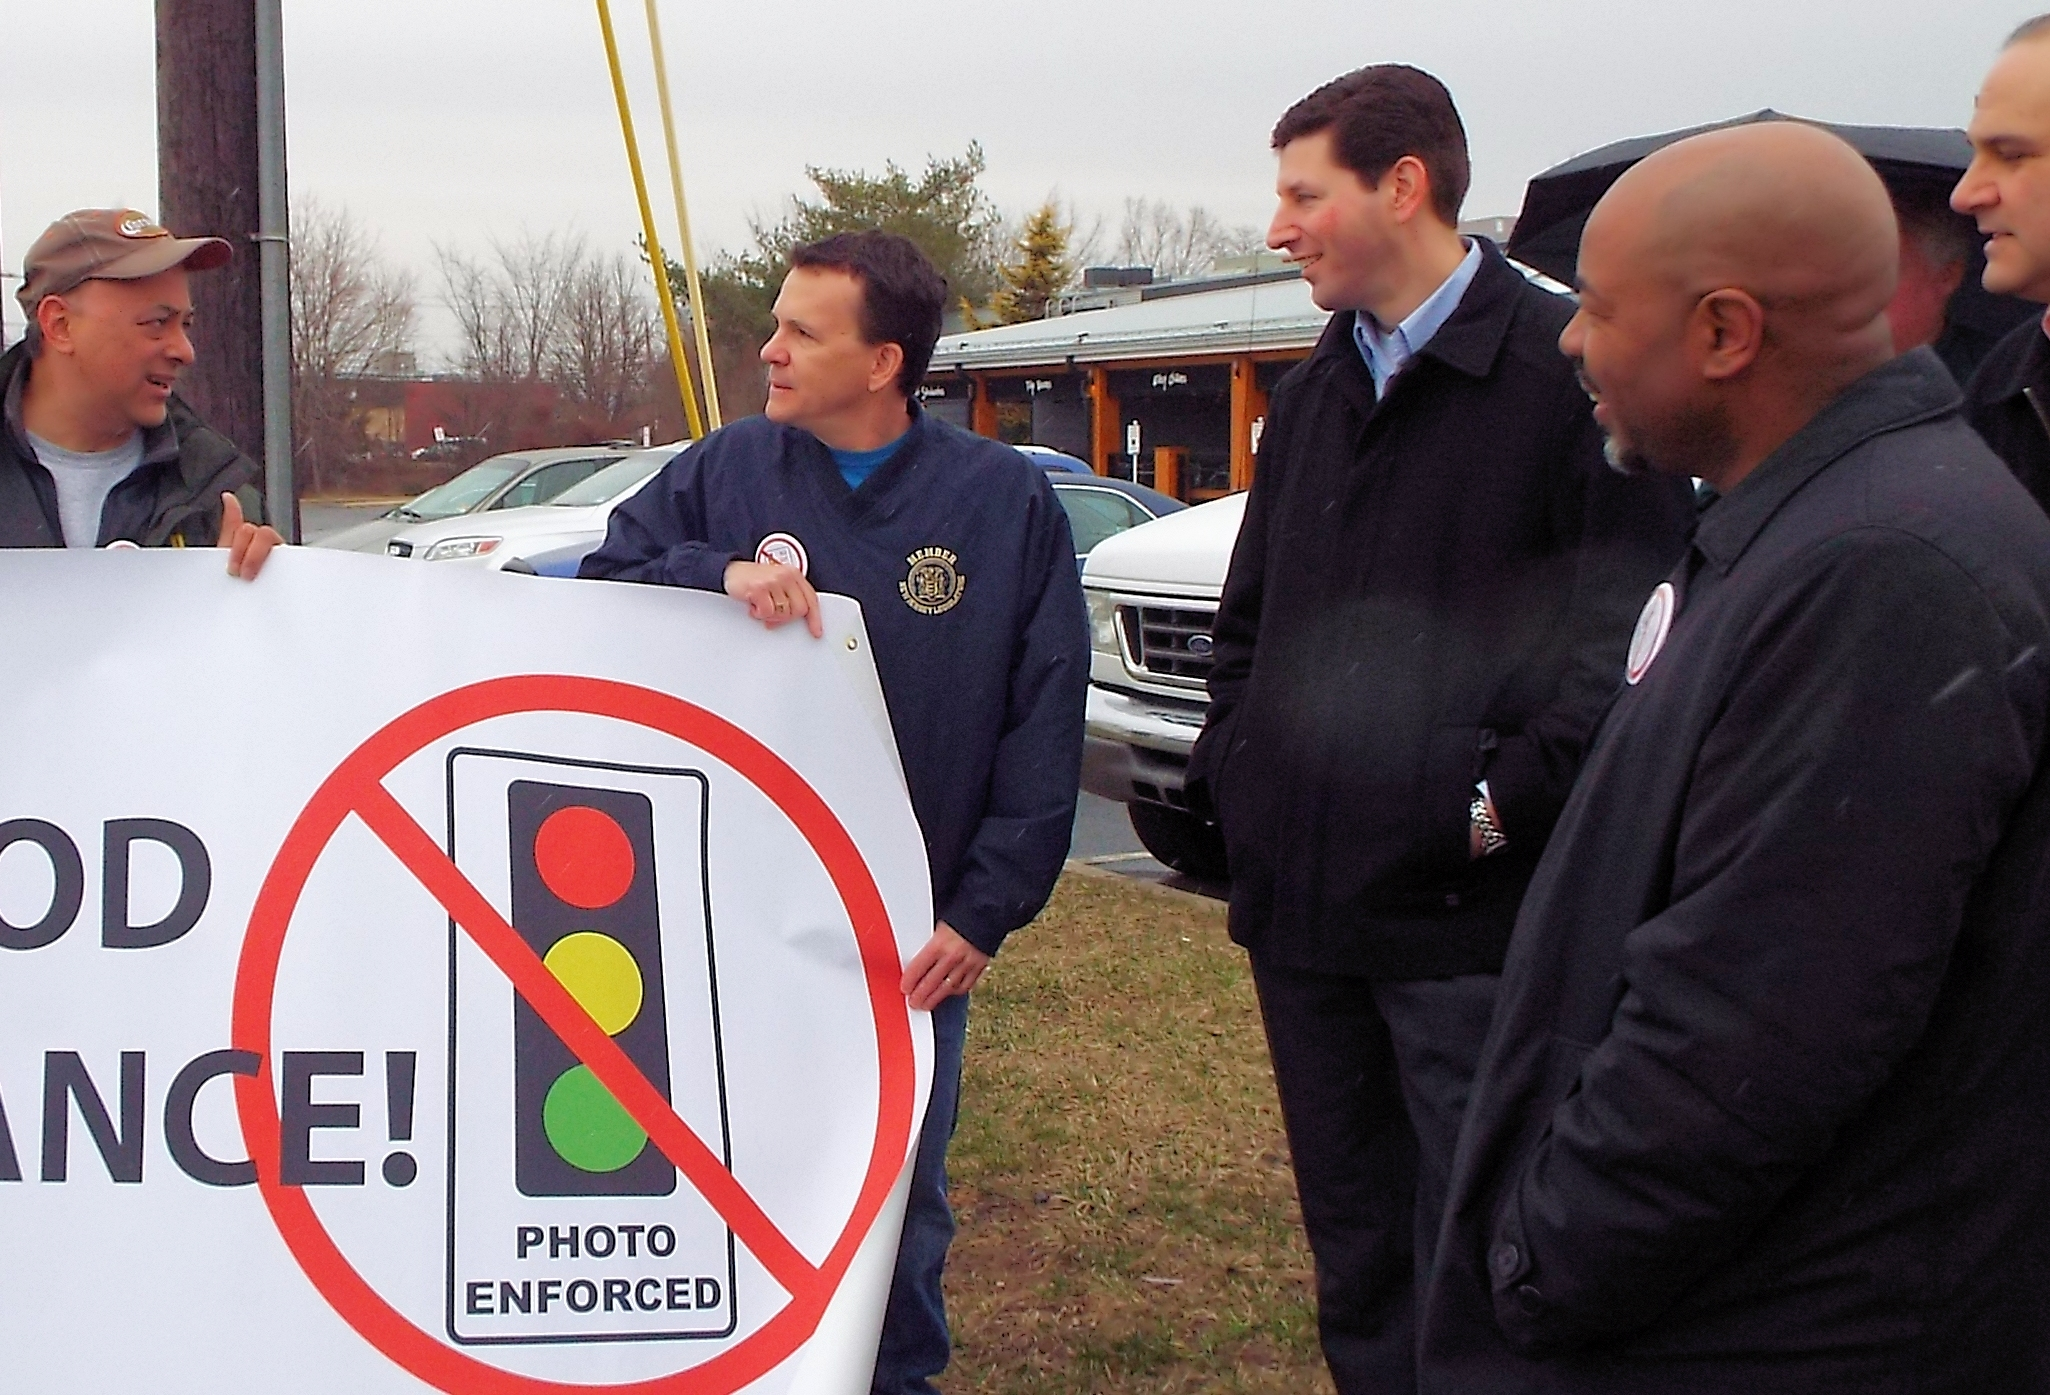 Group Tells Piscataway That Cameras Need to Go